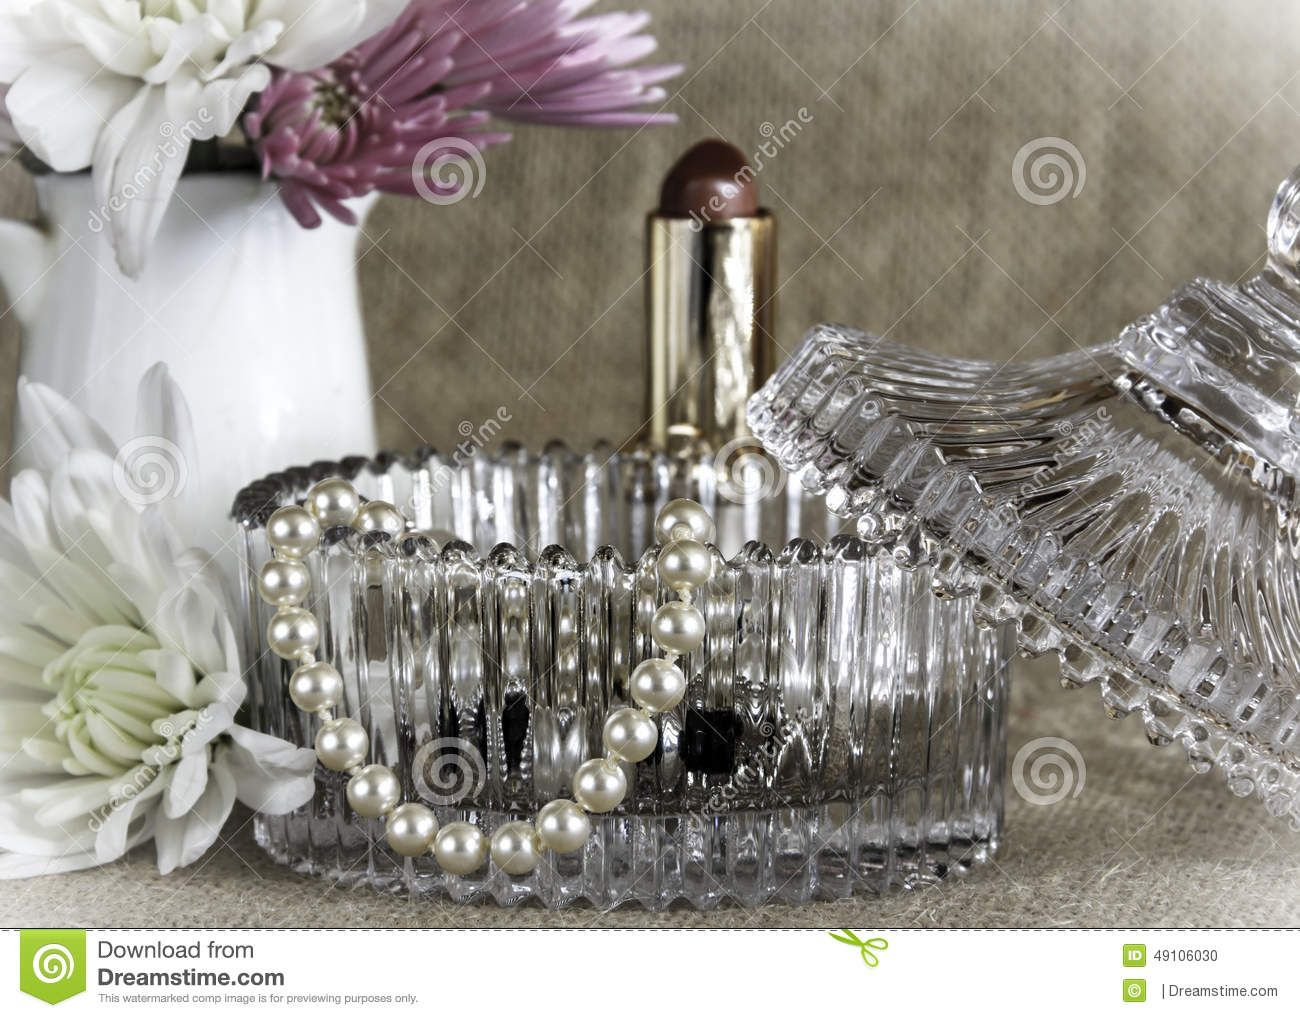 A display of a Trinket Jar and Pink Flower placed on a hessian background